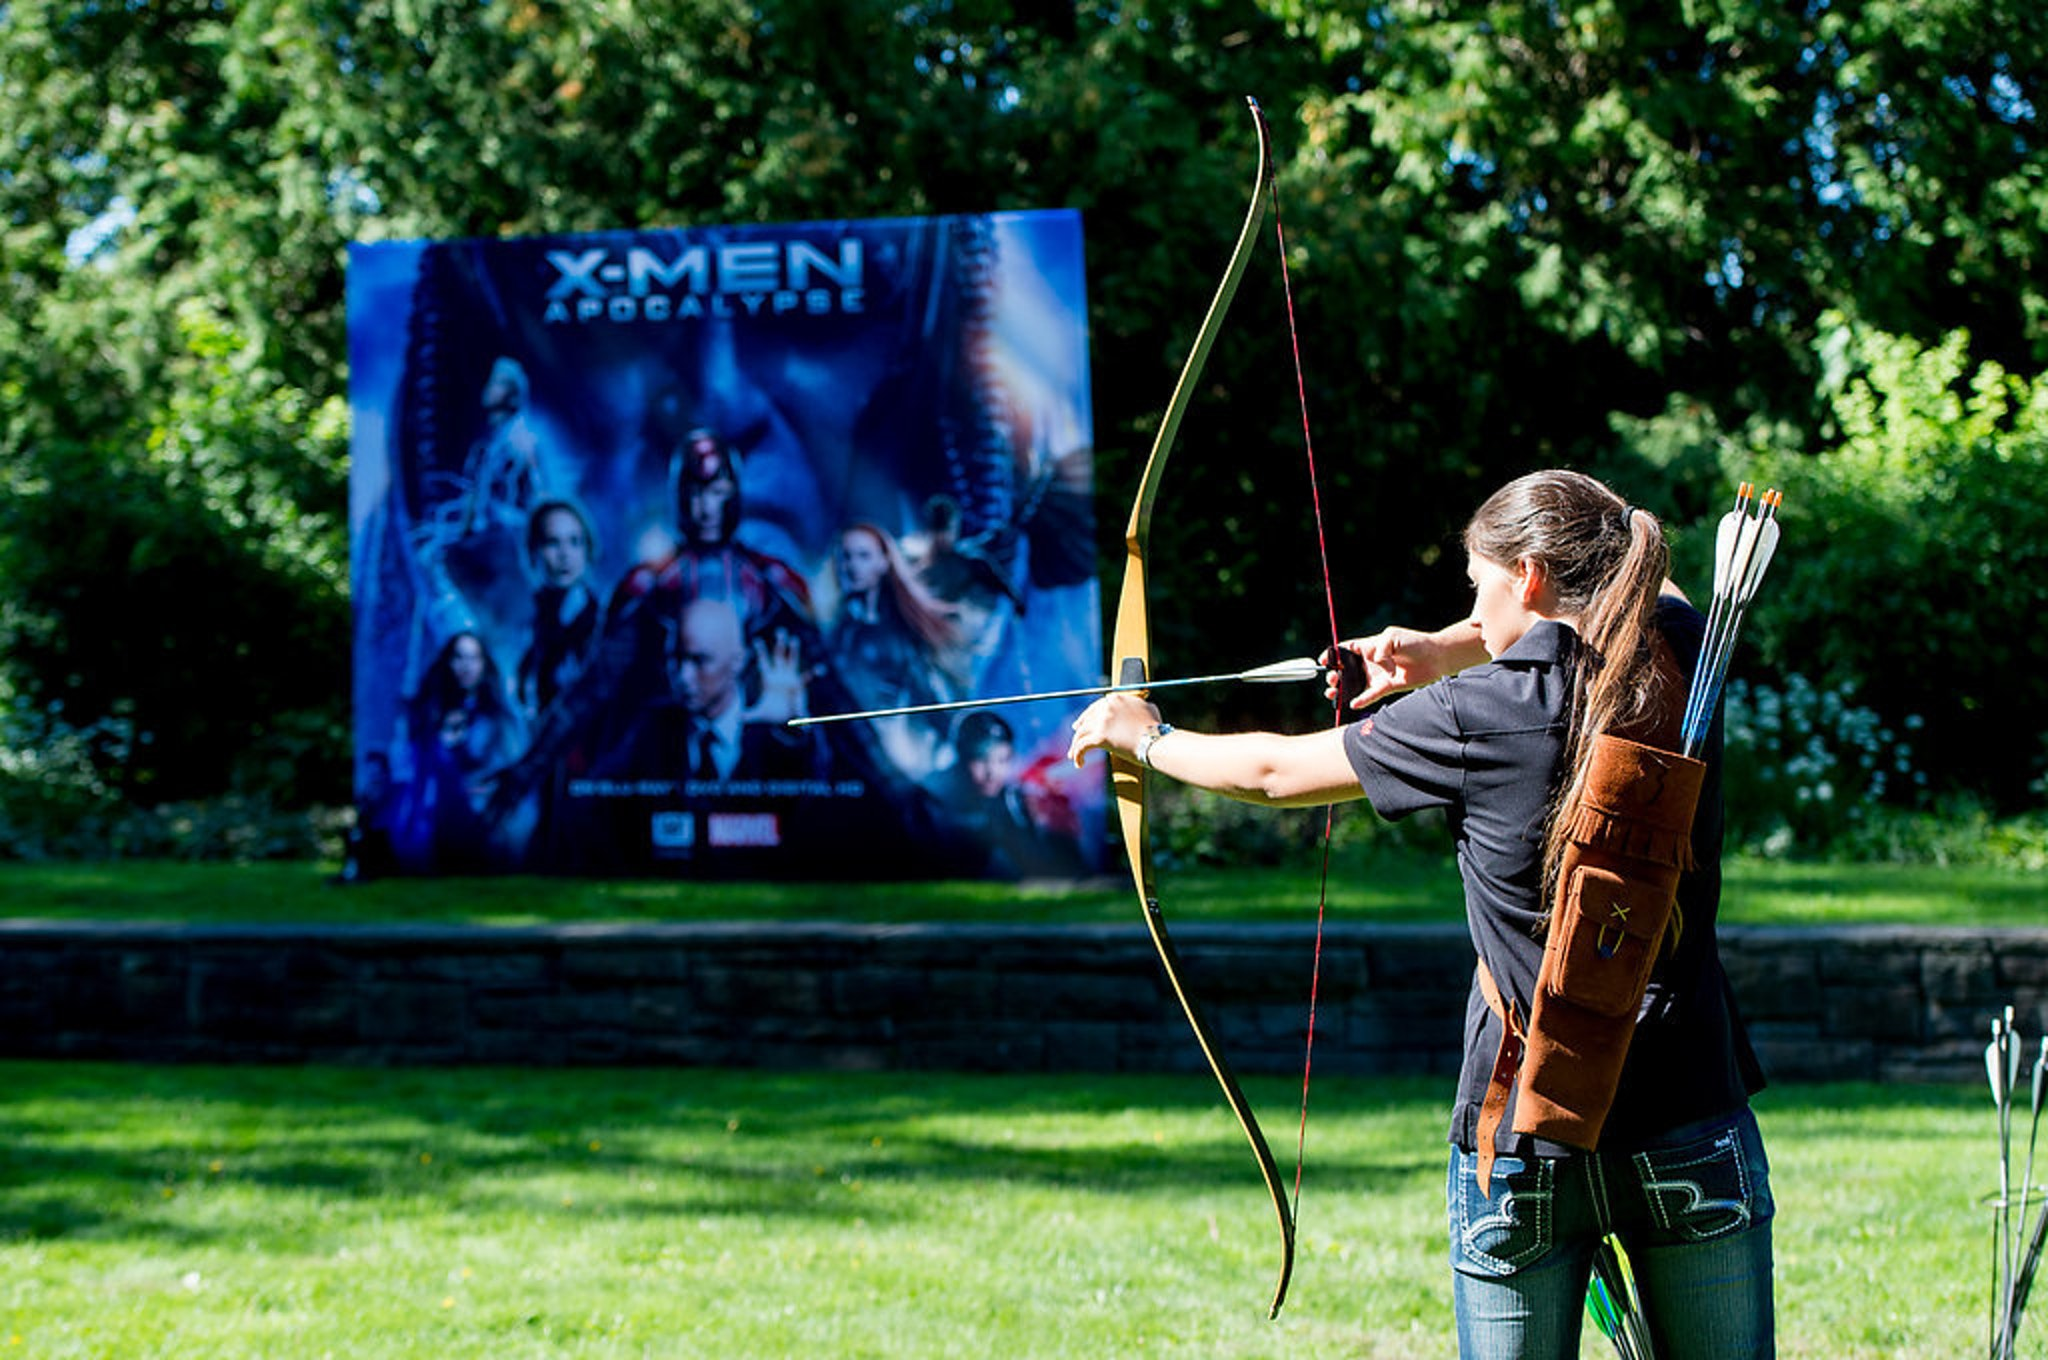 Professional archery instructors were on hand at the mansion to ensure we wouldn't shoot our eyes out.